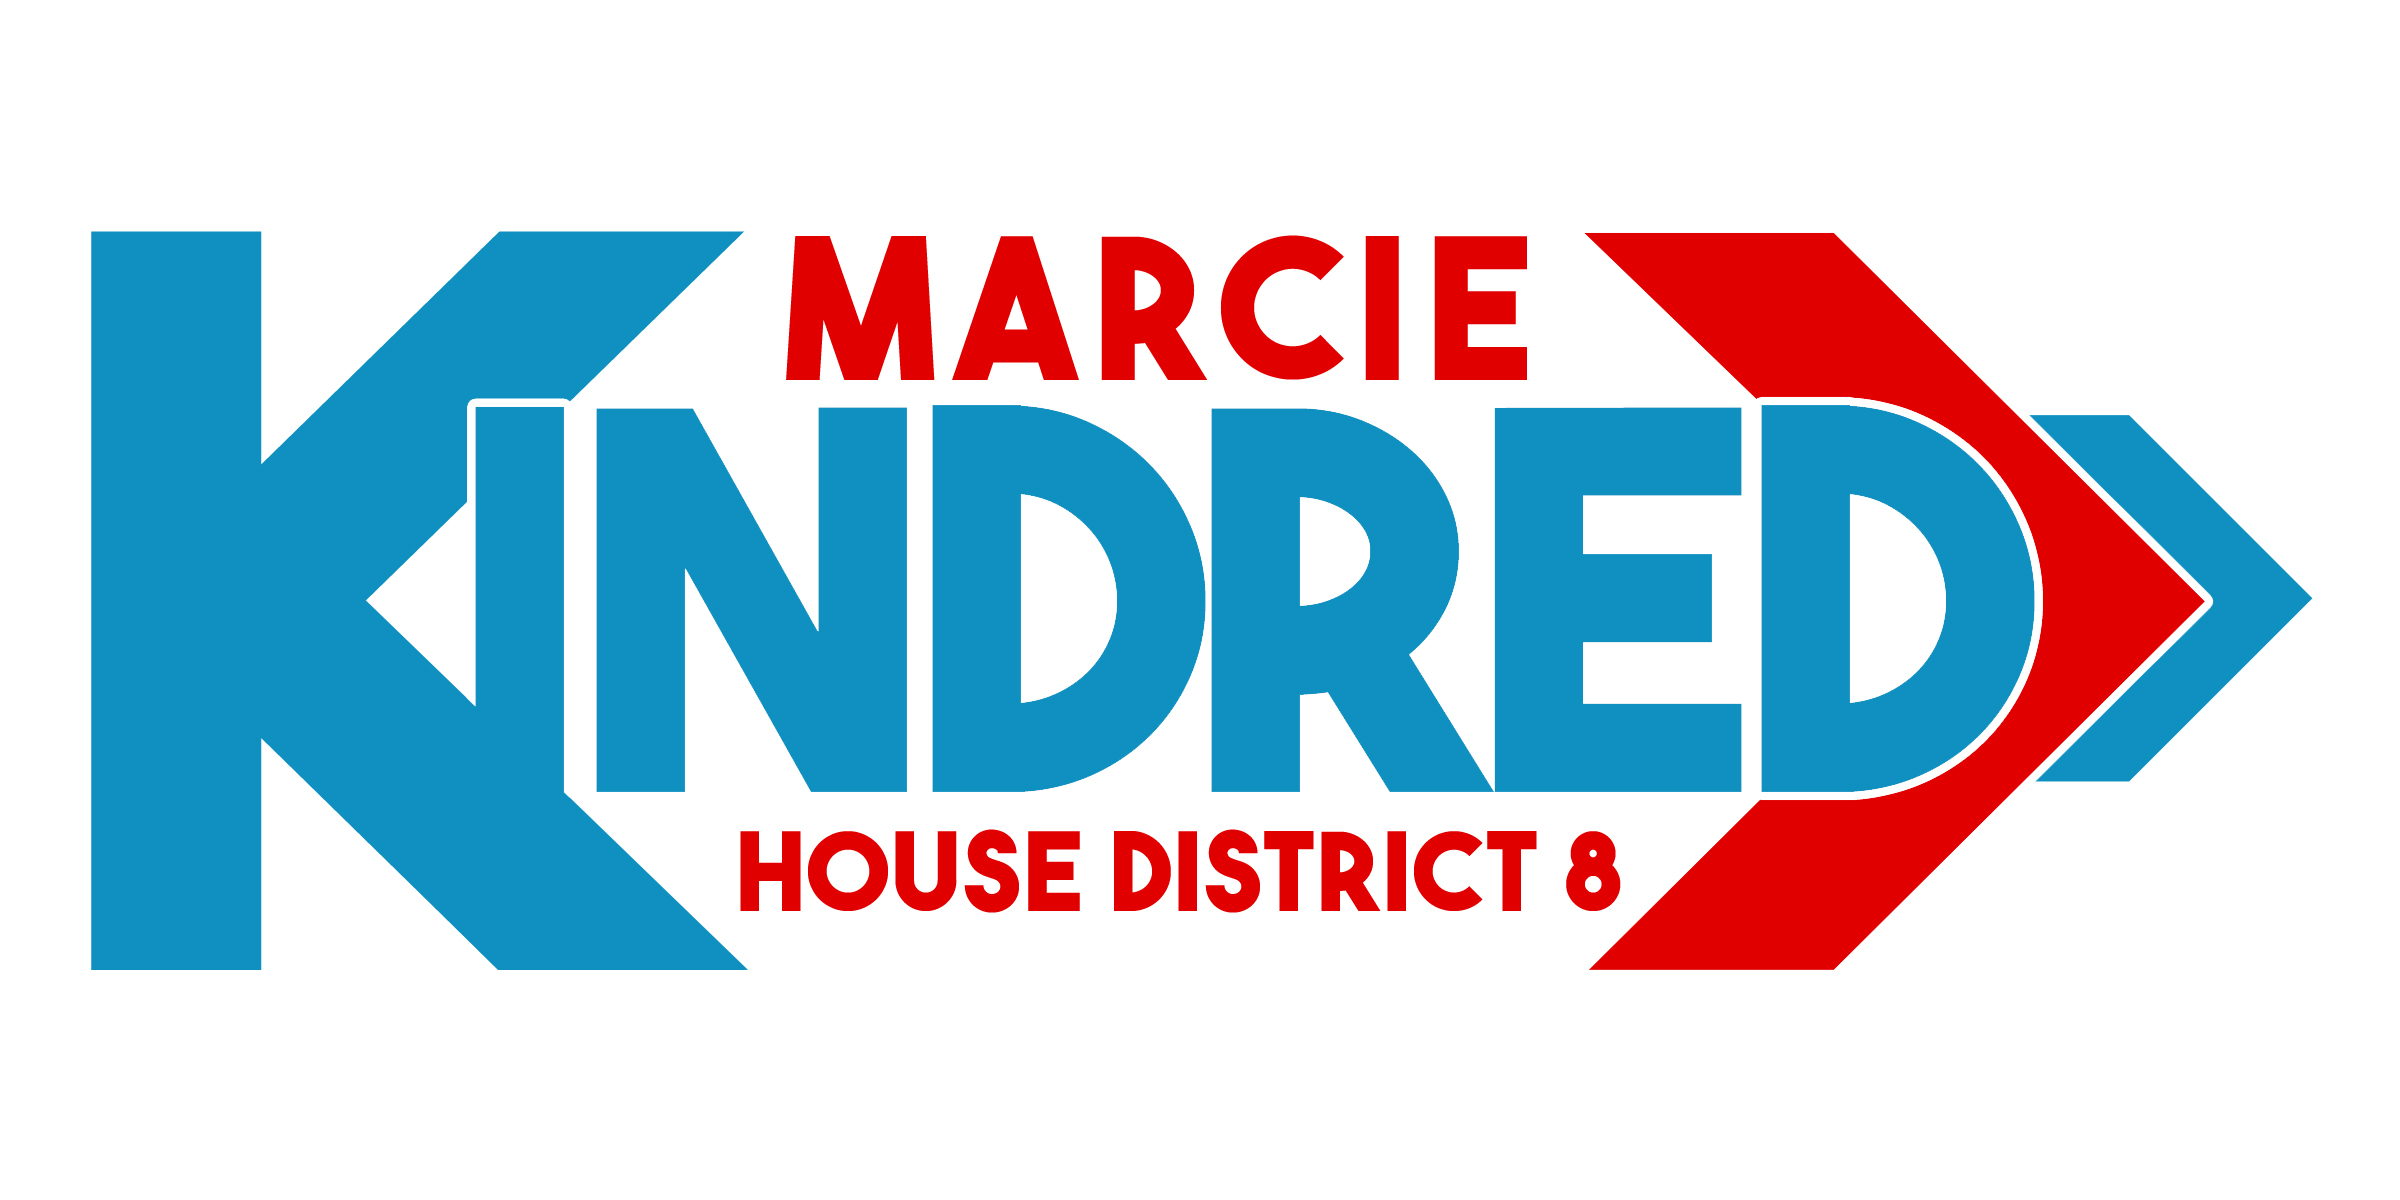 Marcie Kindred